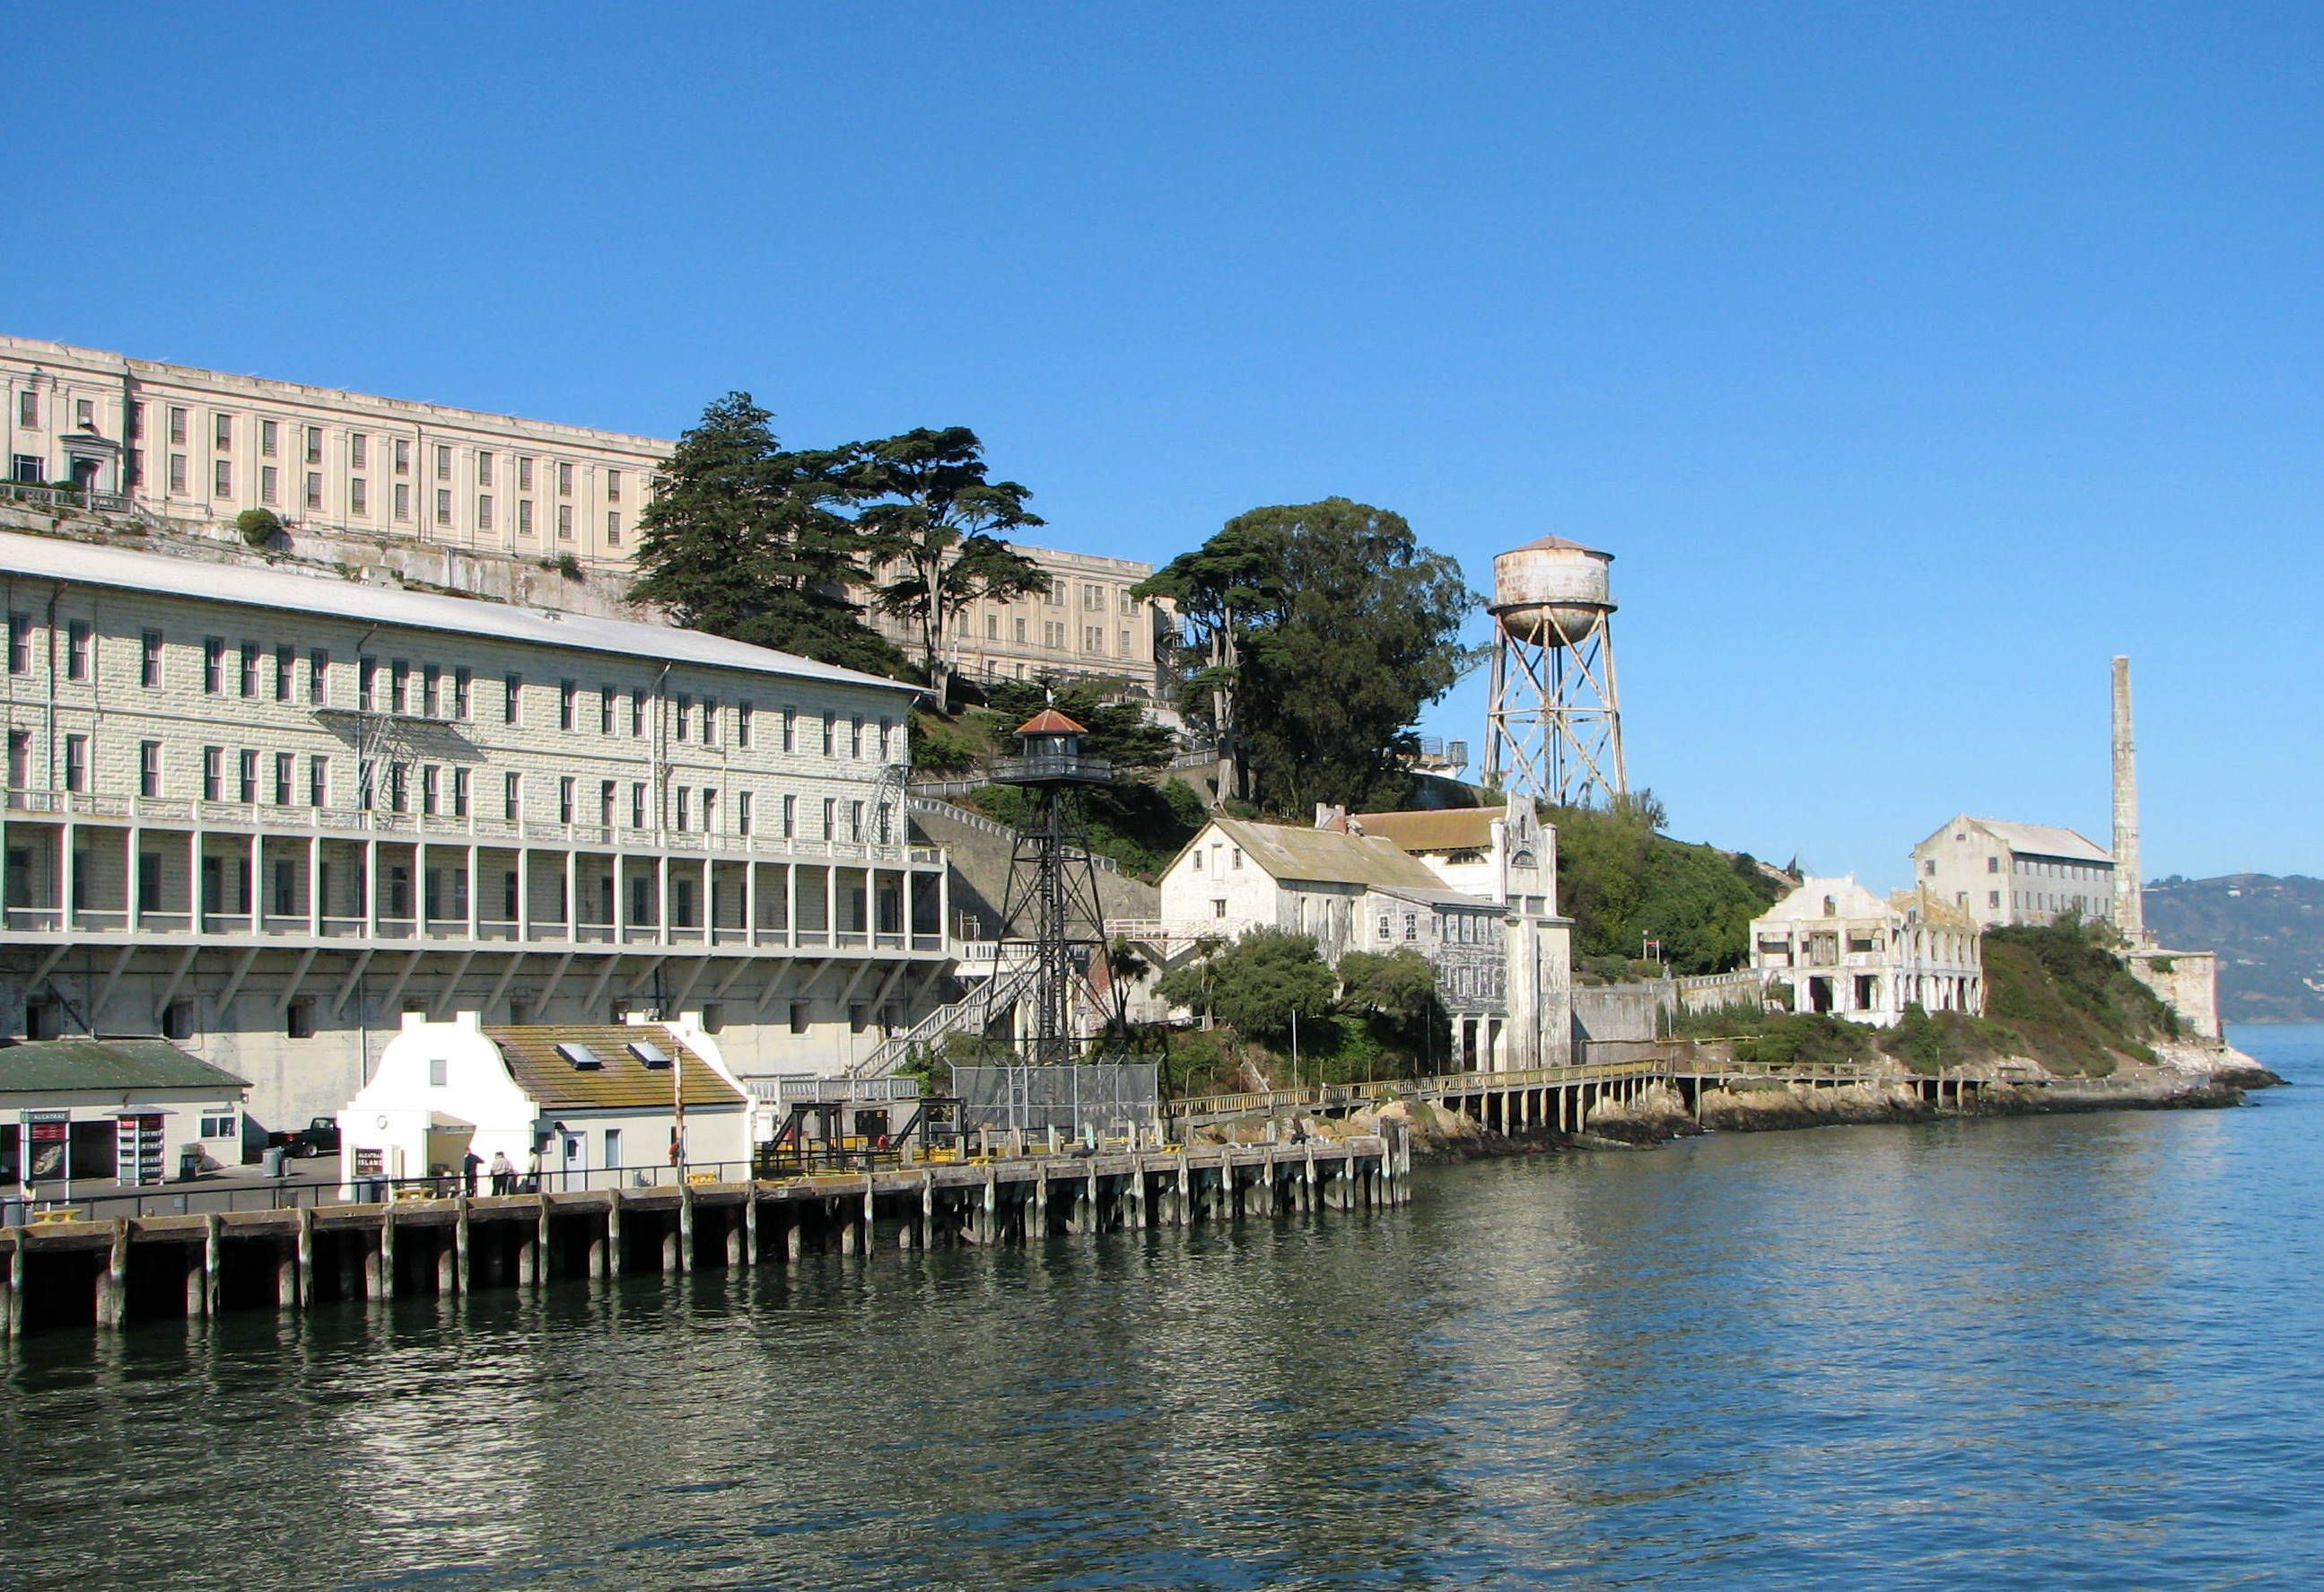 exclusive alcatraz island united states wallpaper | america travel